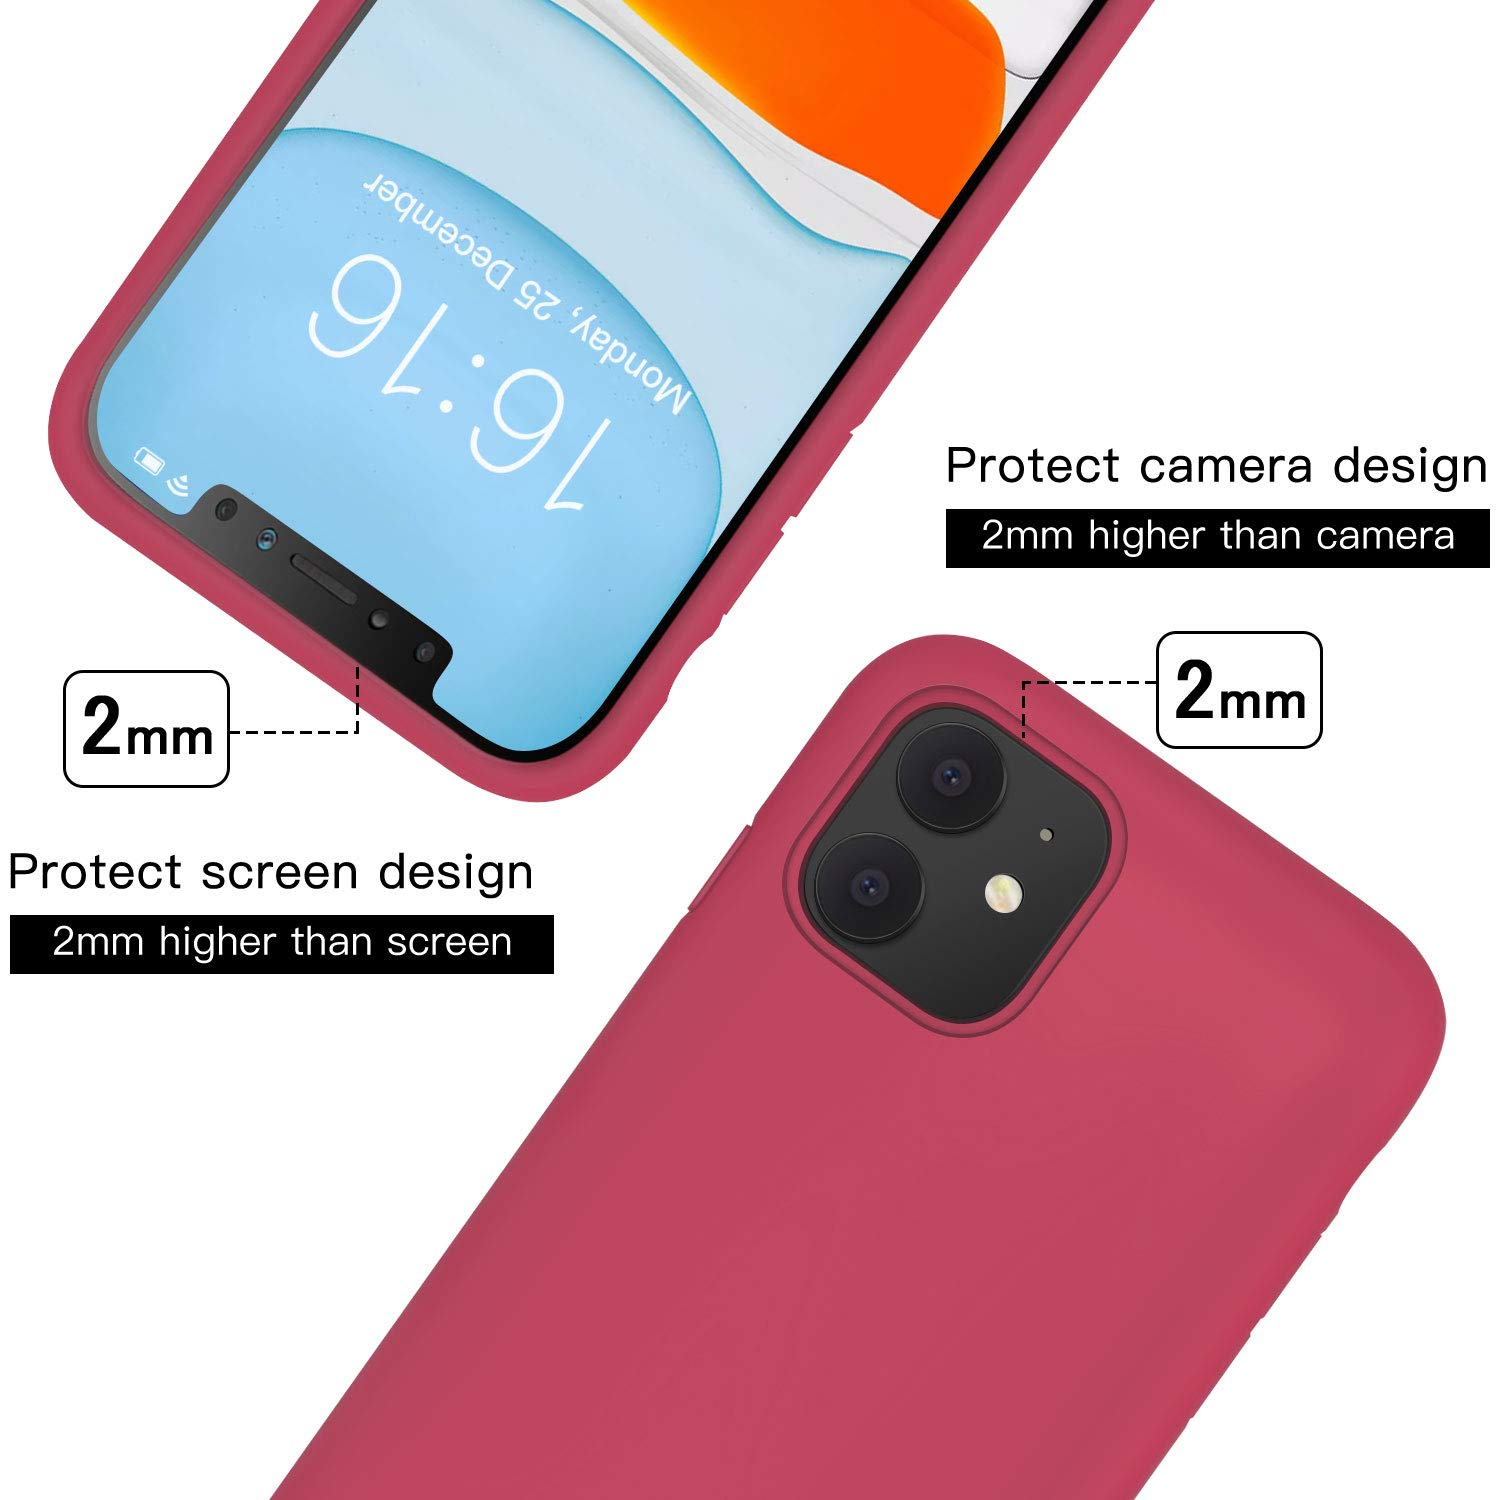 JASBON Case for iPhone 11 Case,Silicone Shockproof Phone Case with Free Screen Protector,Gel Rubber Case Full Body Protection Drop Protection Cover for iPhone 11 6.1 inch(2019)-Rose Red